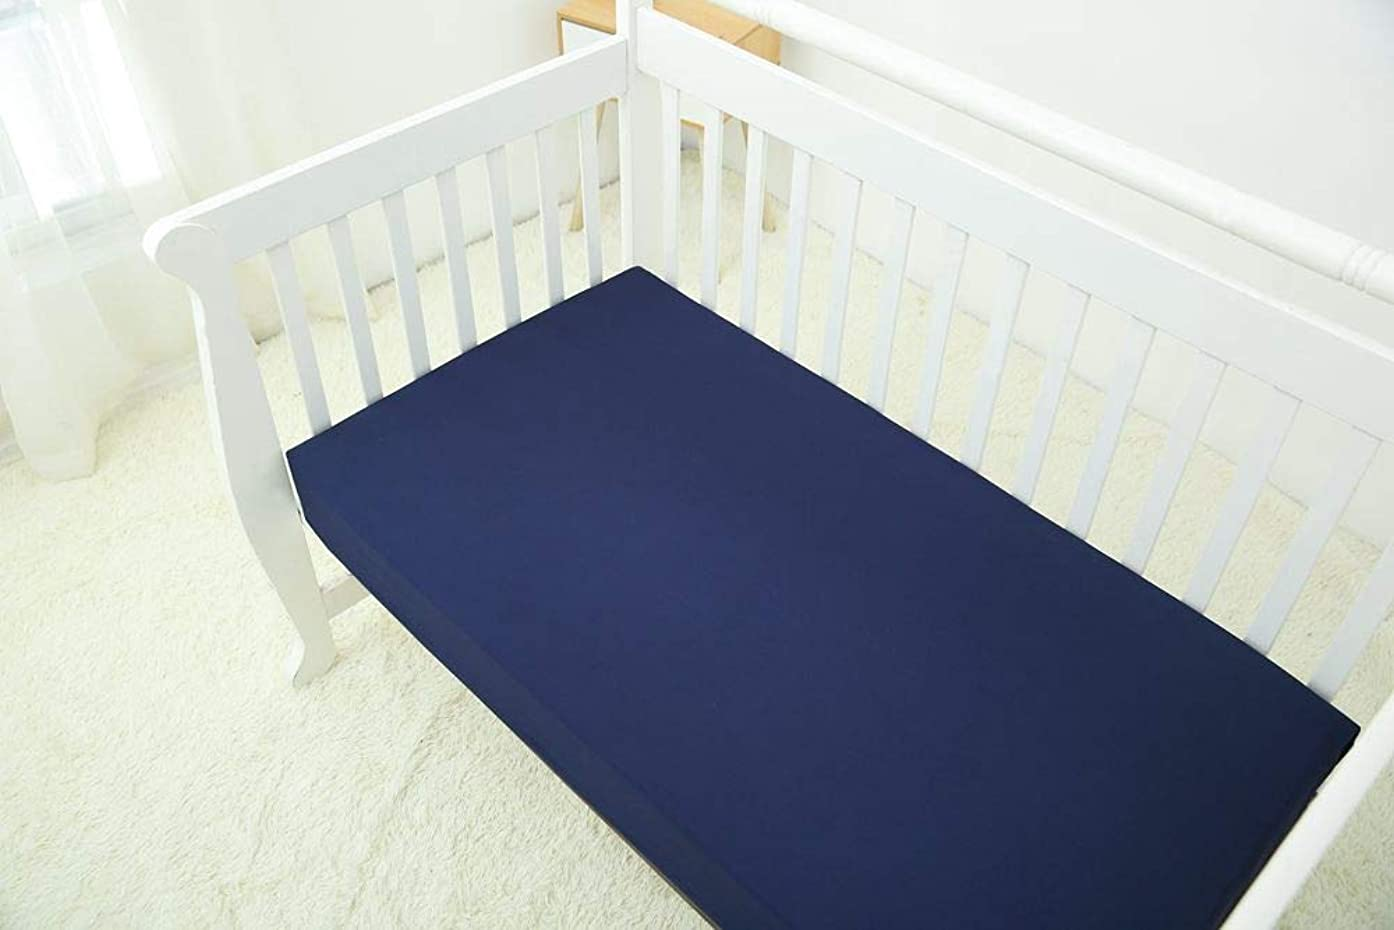 CaSaJa Fitted Crib Sheet, 100% Poly Microfiber, Soft Cozy and Hypoallergenic for Four Season, Fits Standard Size Crib(28 in x 52 in) or Toddler Mattresses, Navy